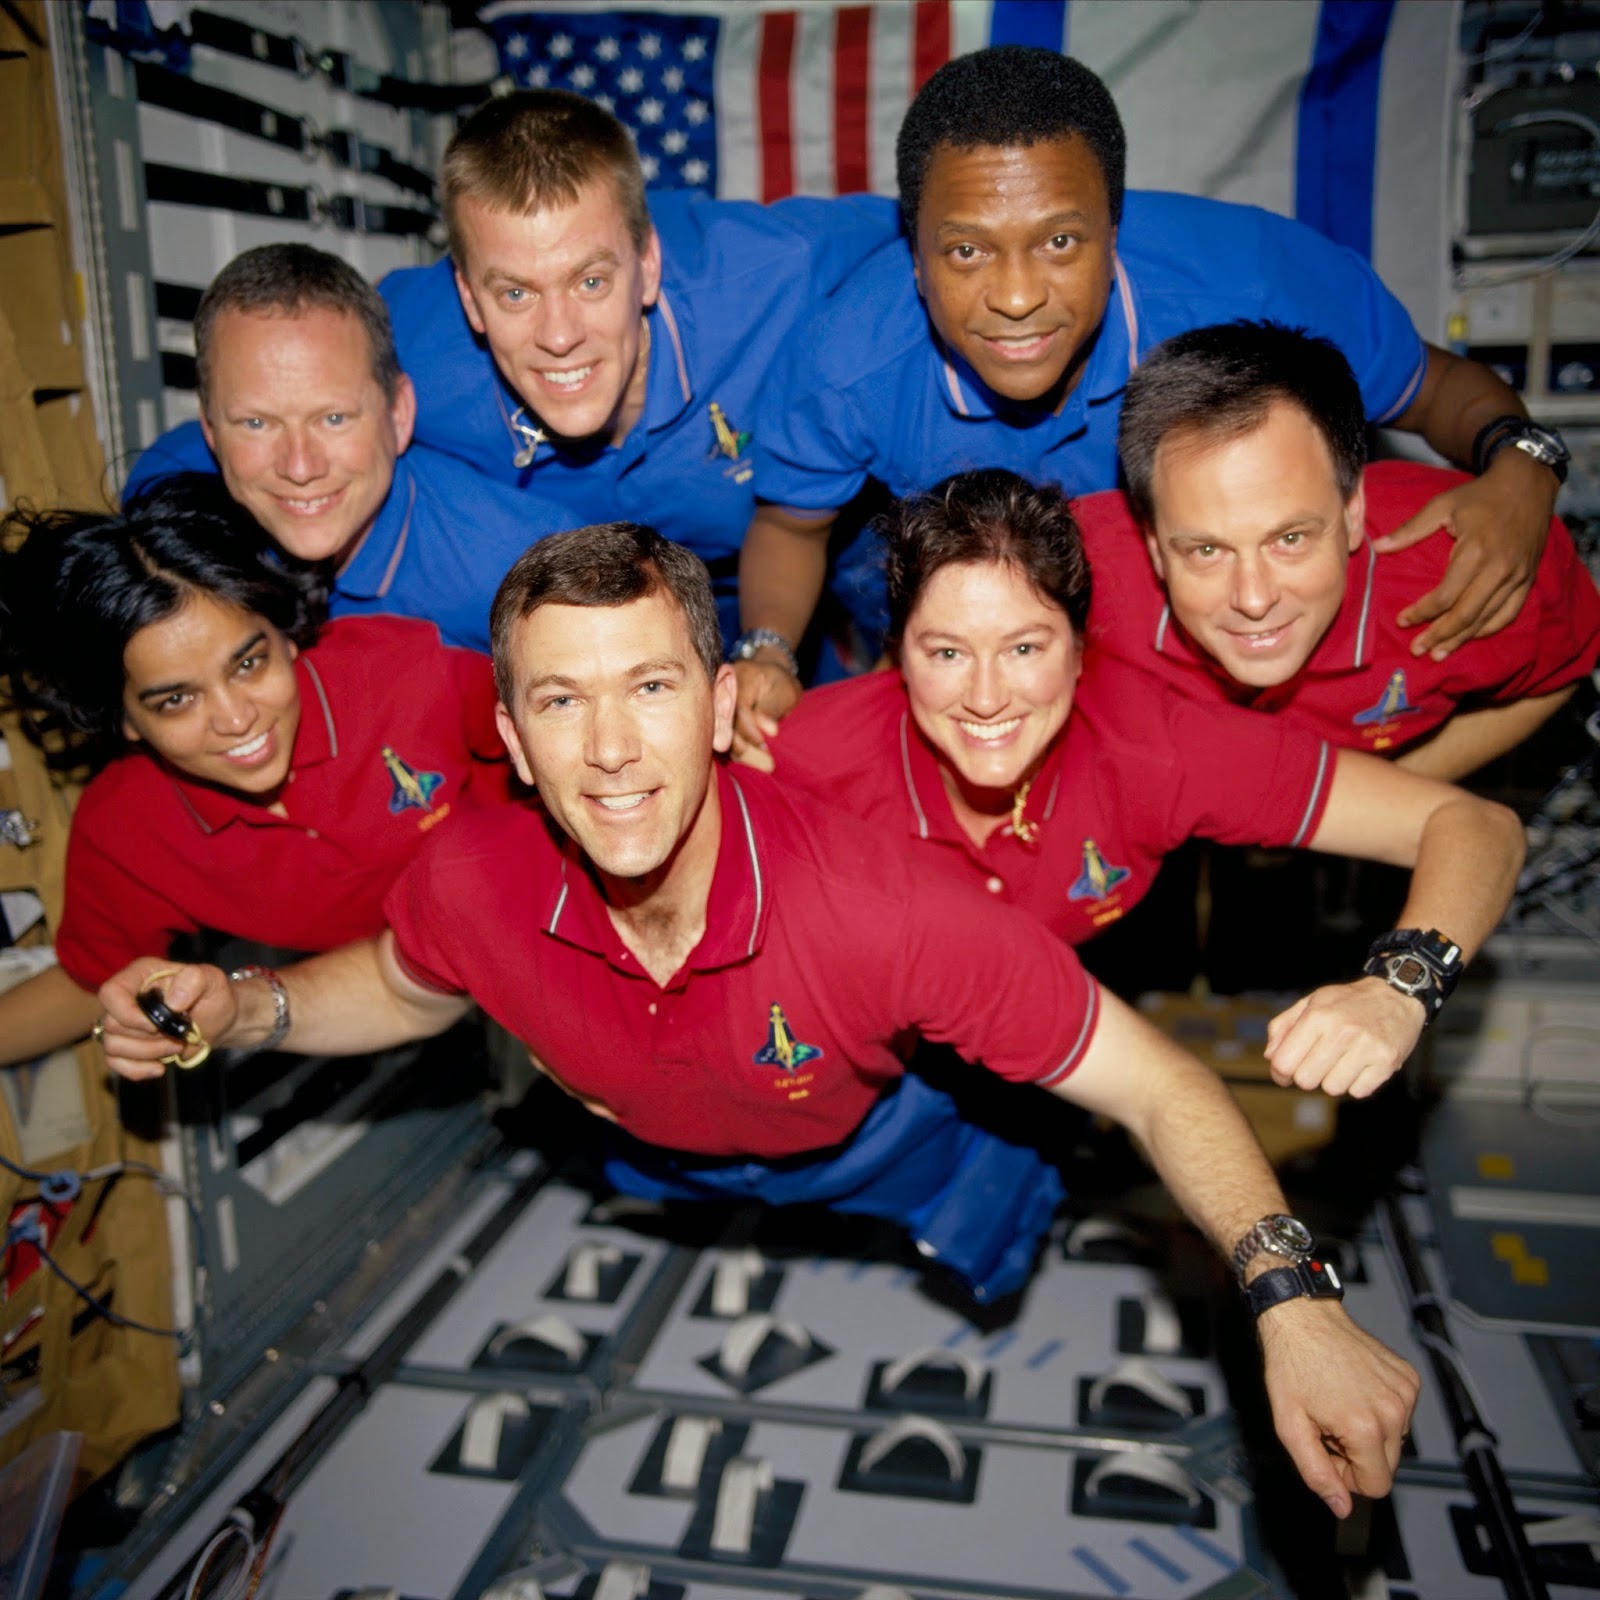 The STS-107 crewmembers strike a 'flying' pose for their traditional in-flight crew portrait in the SPACEHAB Research Double Module (RDM) aboard the Space Shuttle Columbia. From the left (bottom row), wearing red shirts to signify their shift's color, are astronauts Kalpana Chawla, mission specialist; Rick D. Husband, mission commander; Laurel B. Clark, mission specialist; and Ilan Ramon, payload specialist. From the left (top row), wearing blue shirts, are astronauts David M. Brown, mission specialist; William C. McCool, pilot; and Michael P. Anderson, payload commander. Ramon represents the Israeli Space Agency. Credit: NASA